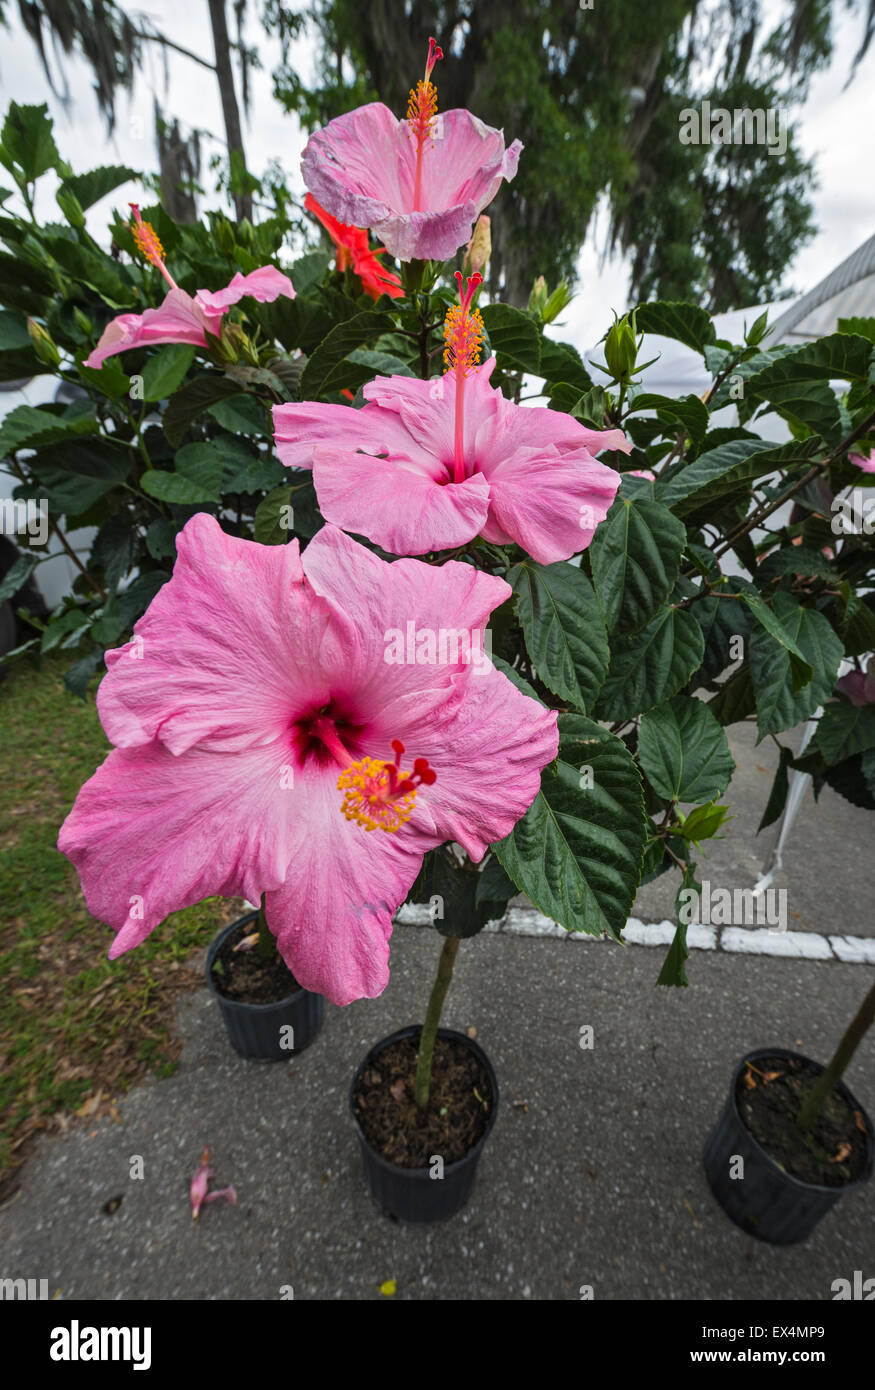 Hibiscus plants stock photos hibiscus plants stock images alamy flowering hibiscus plants for sale at pioneer days festival in high springs florida izmirmasajfo